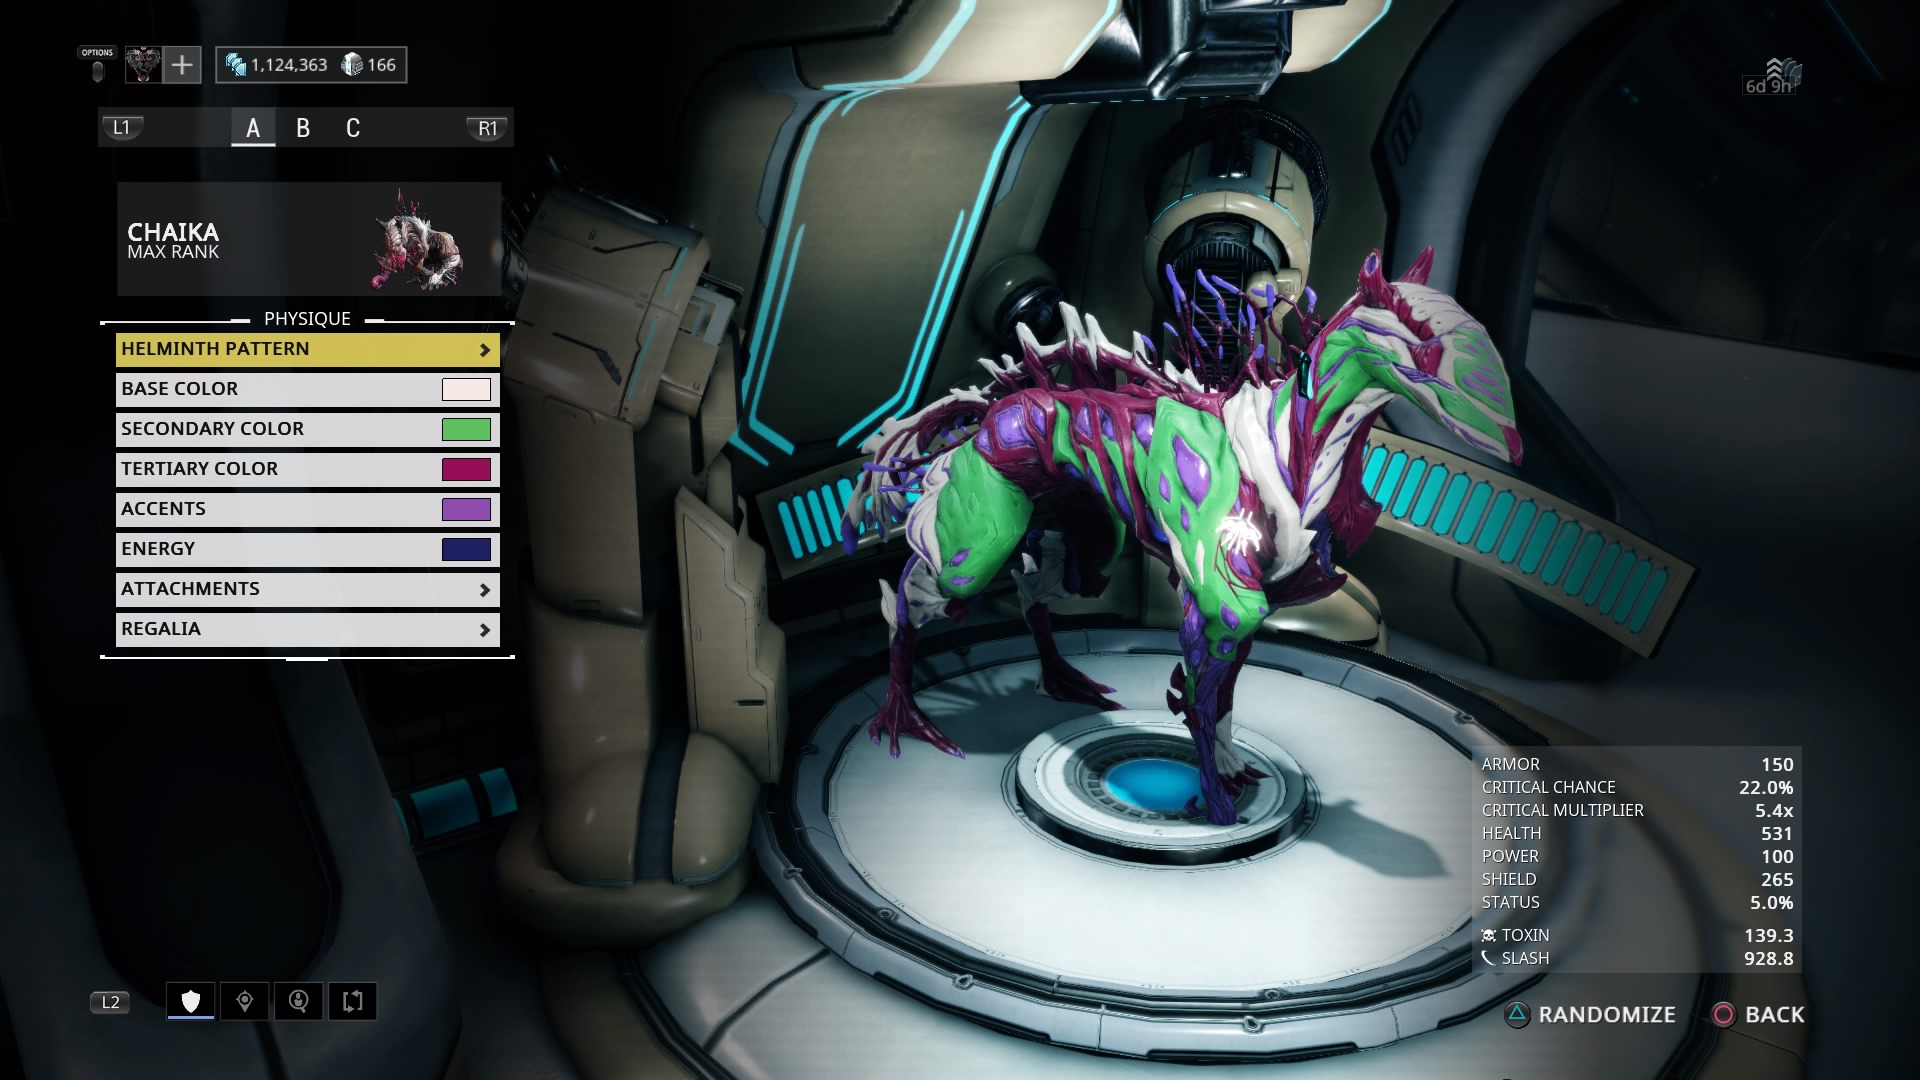 helminth charger infection